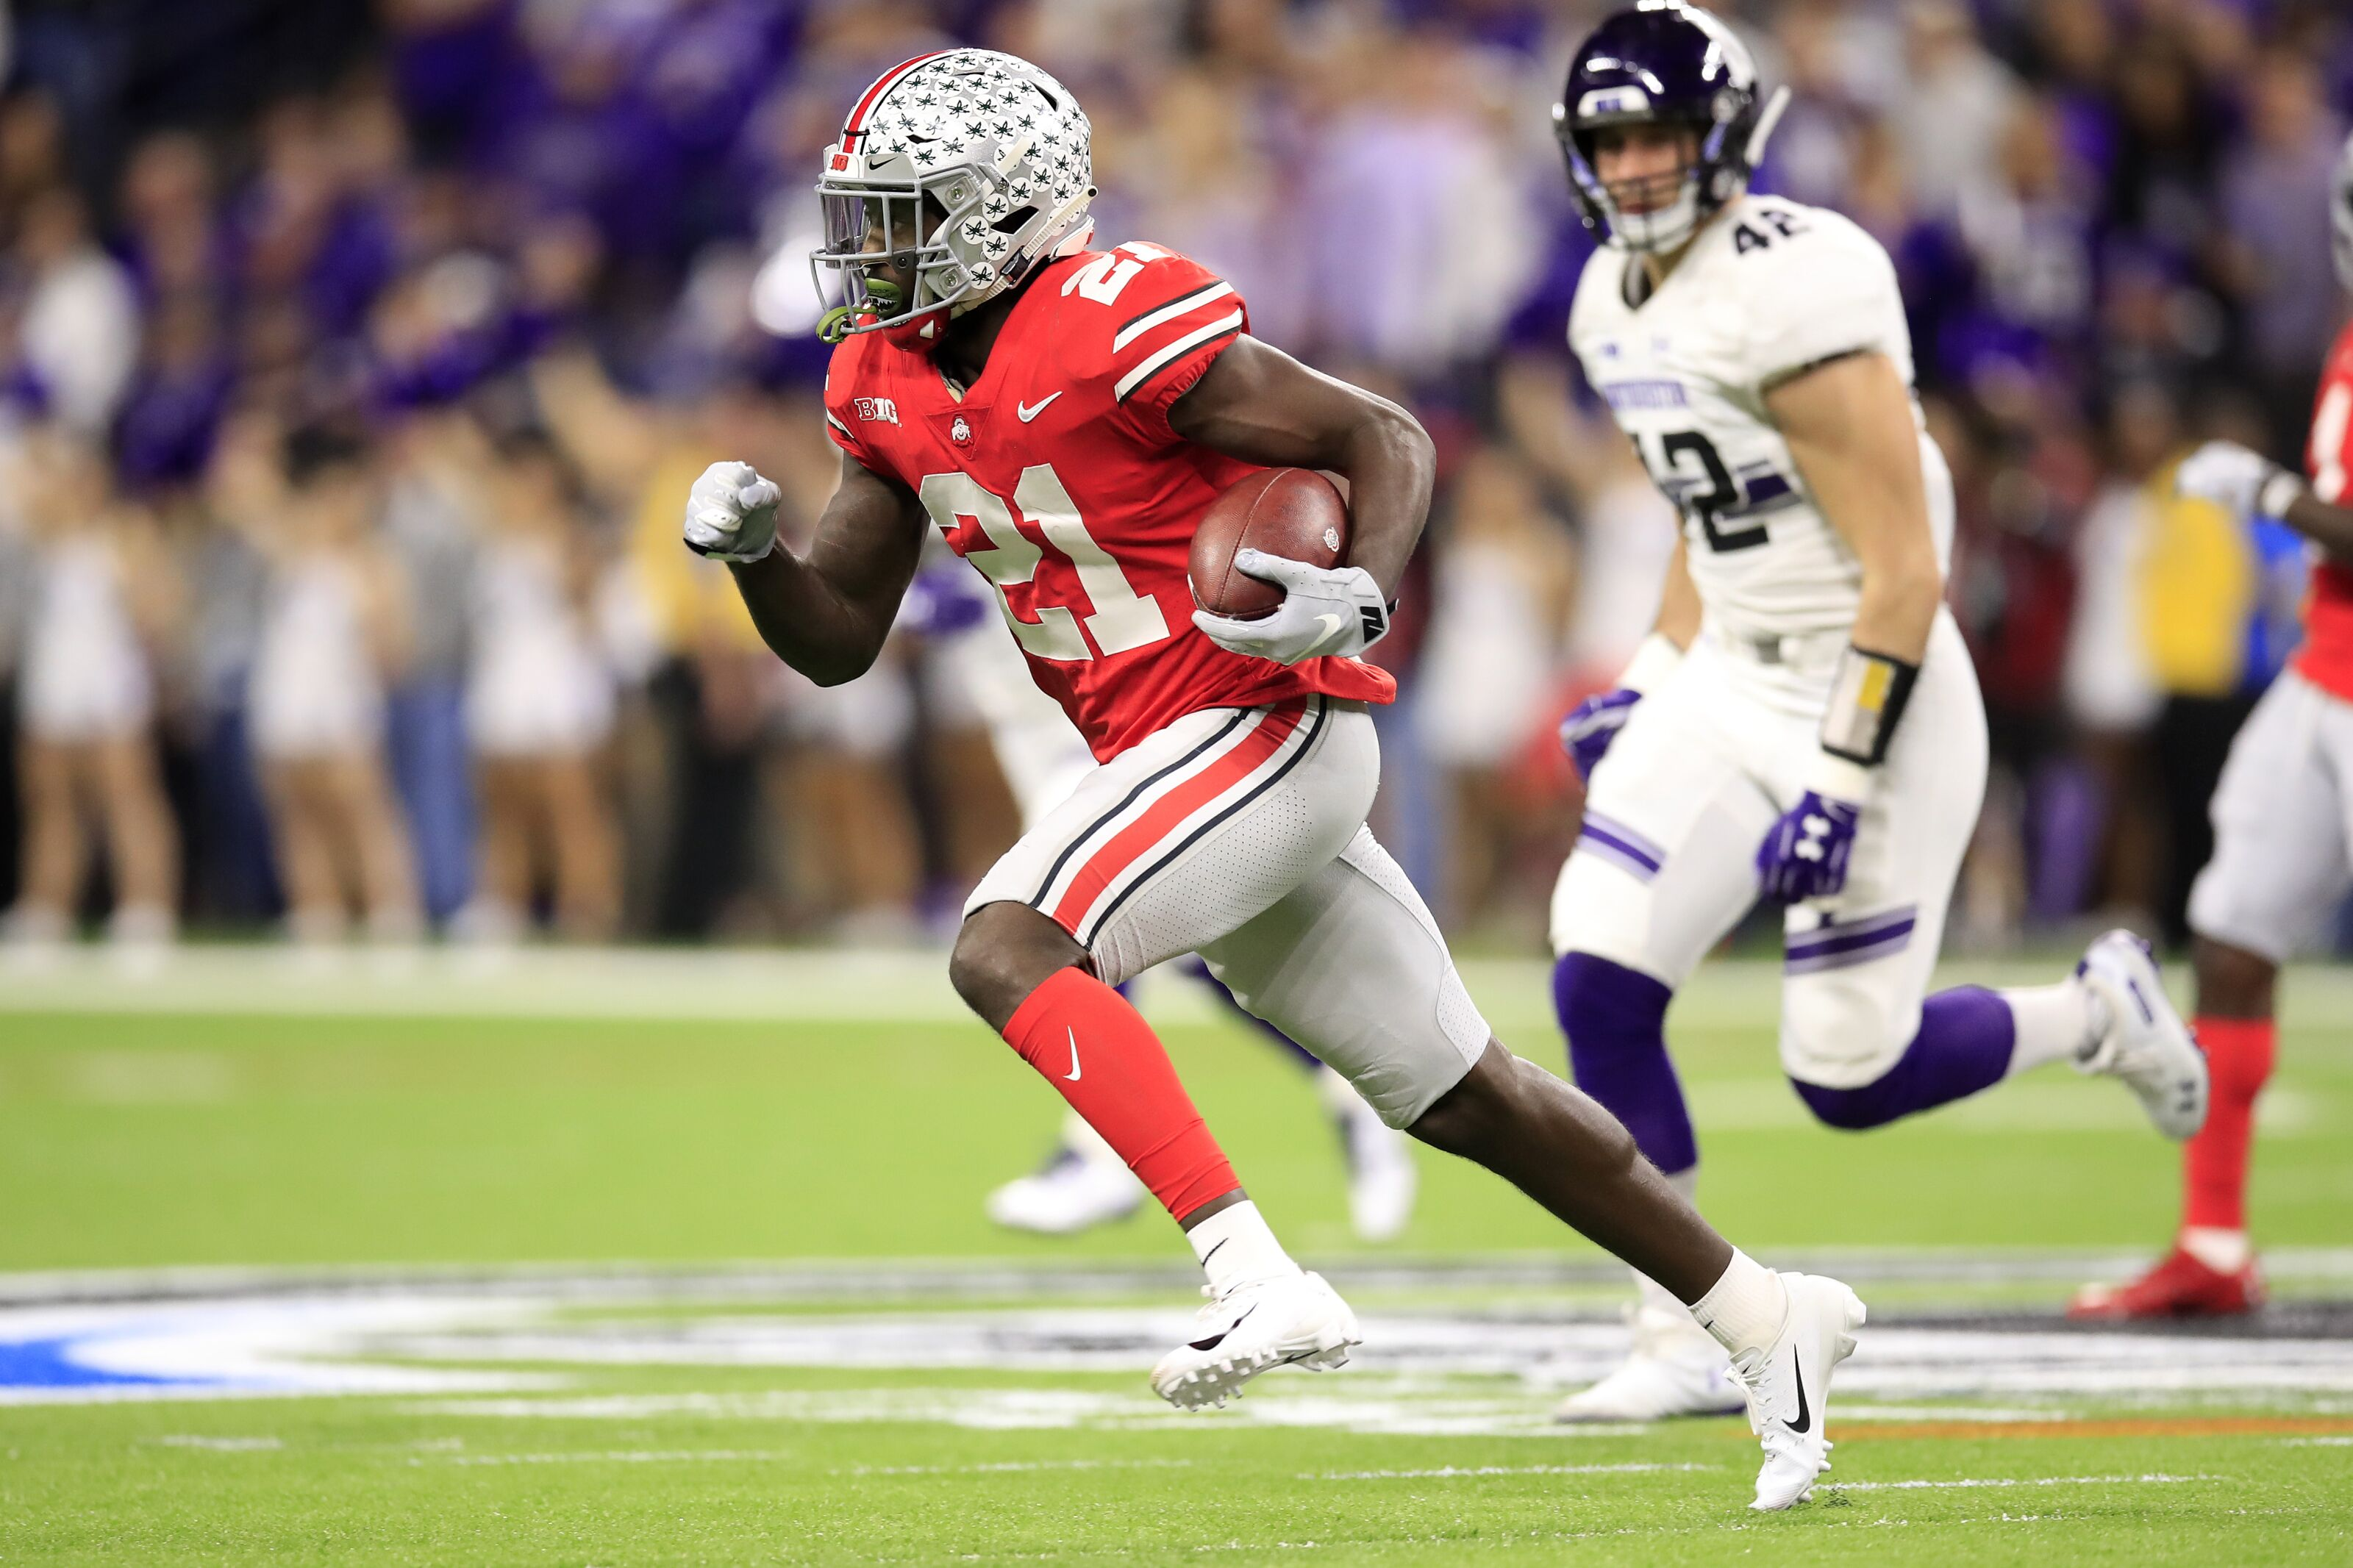 Indianapolis Colts: Parris Campbell on course to be No. 3 WR